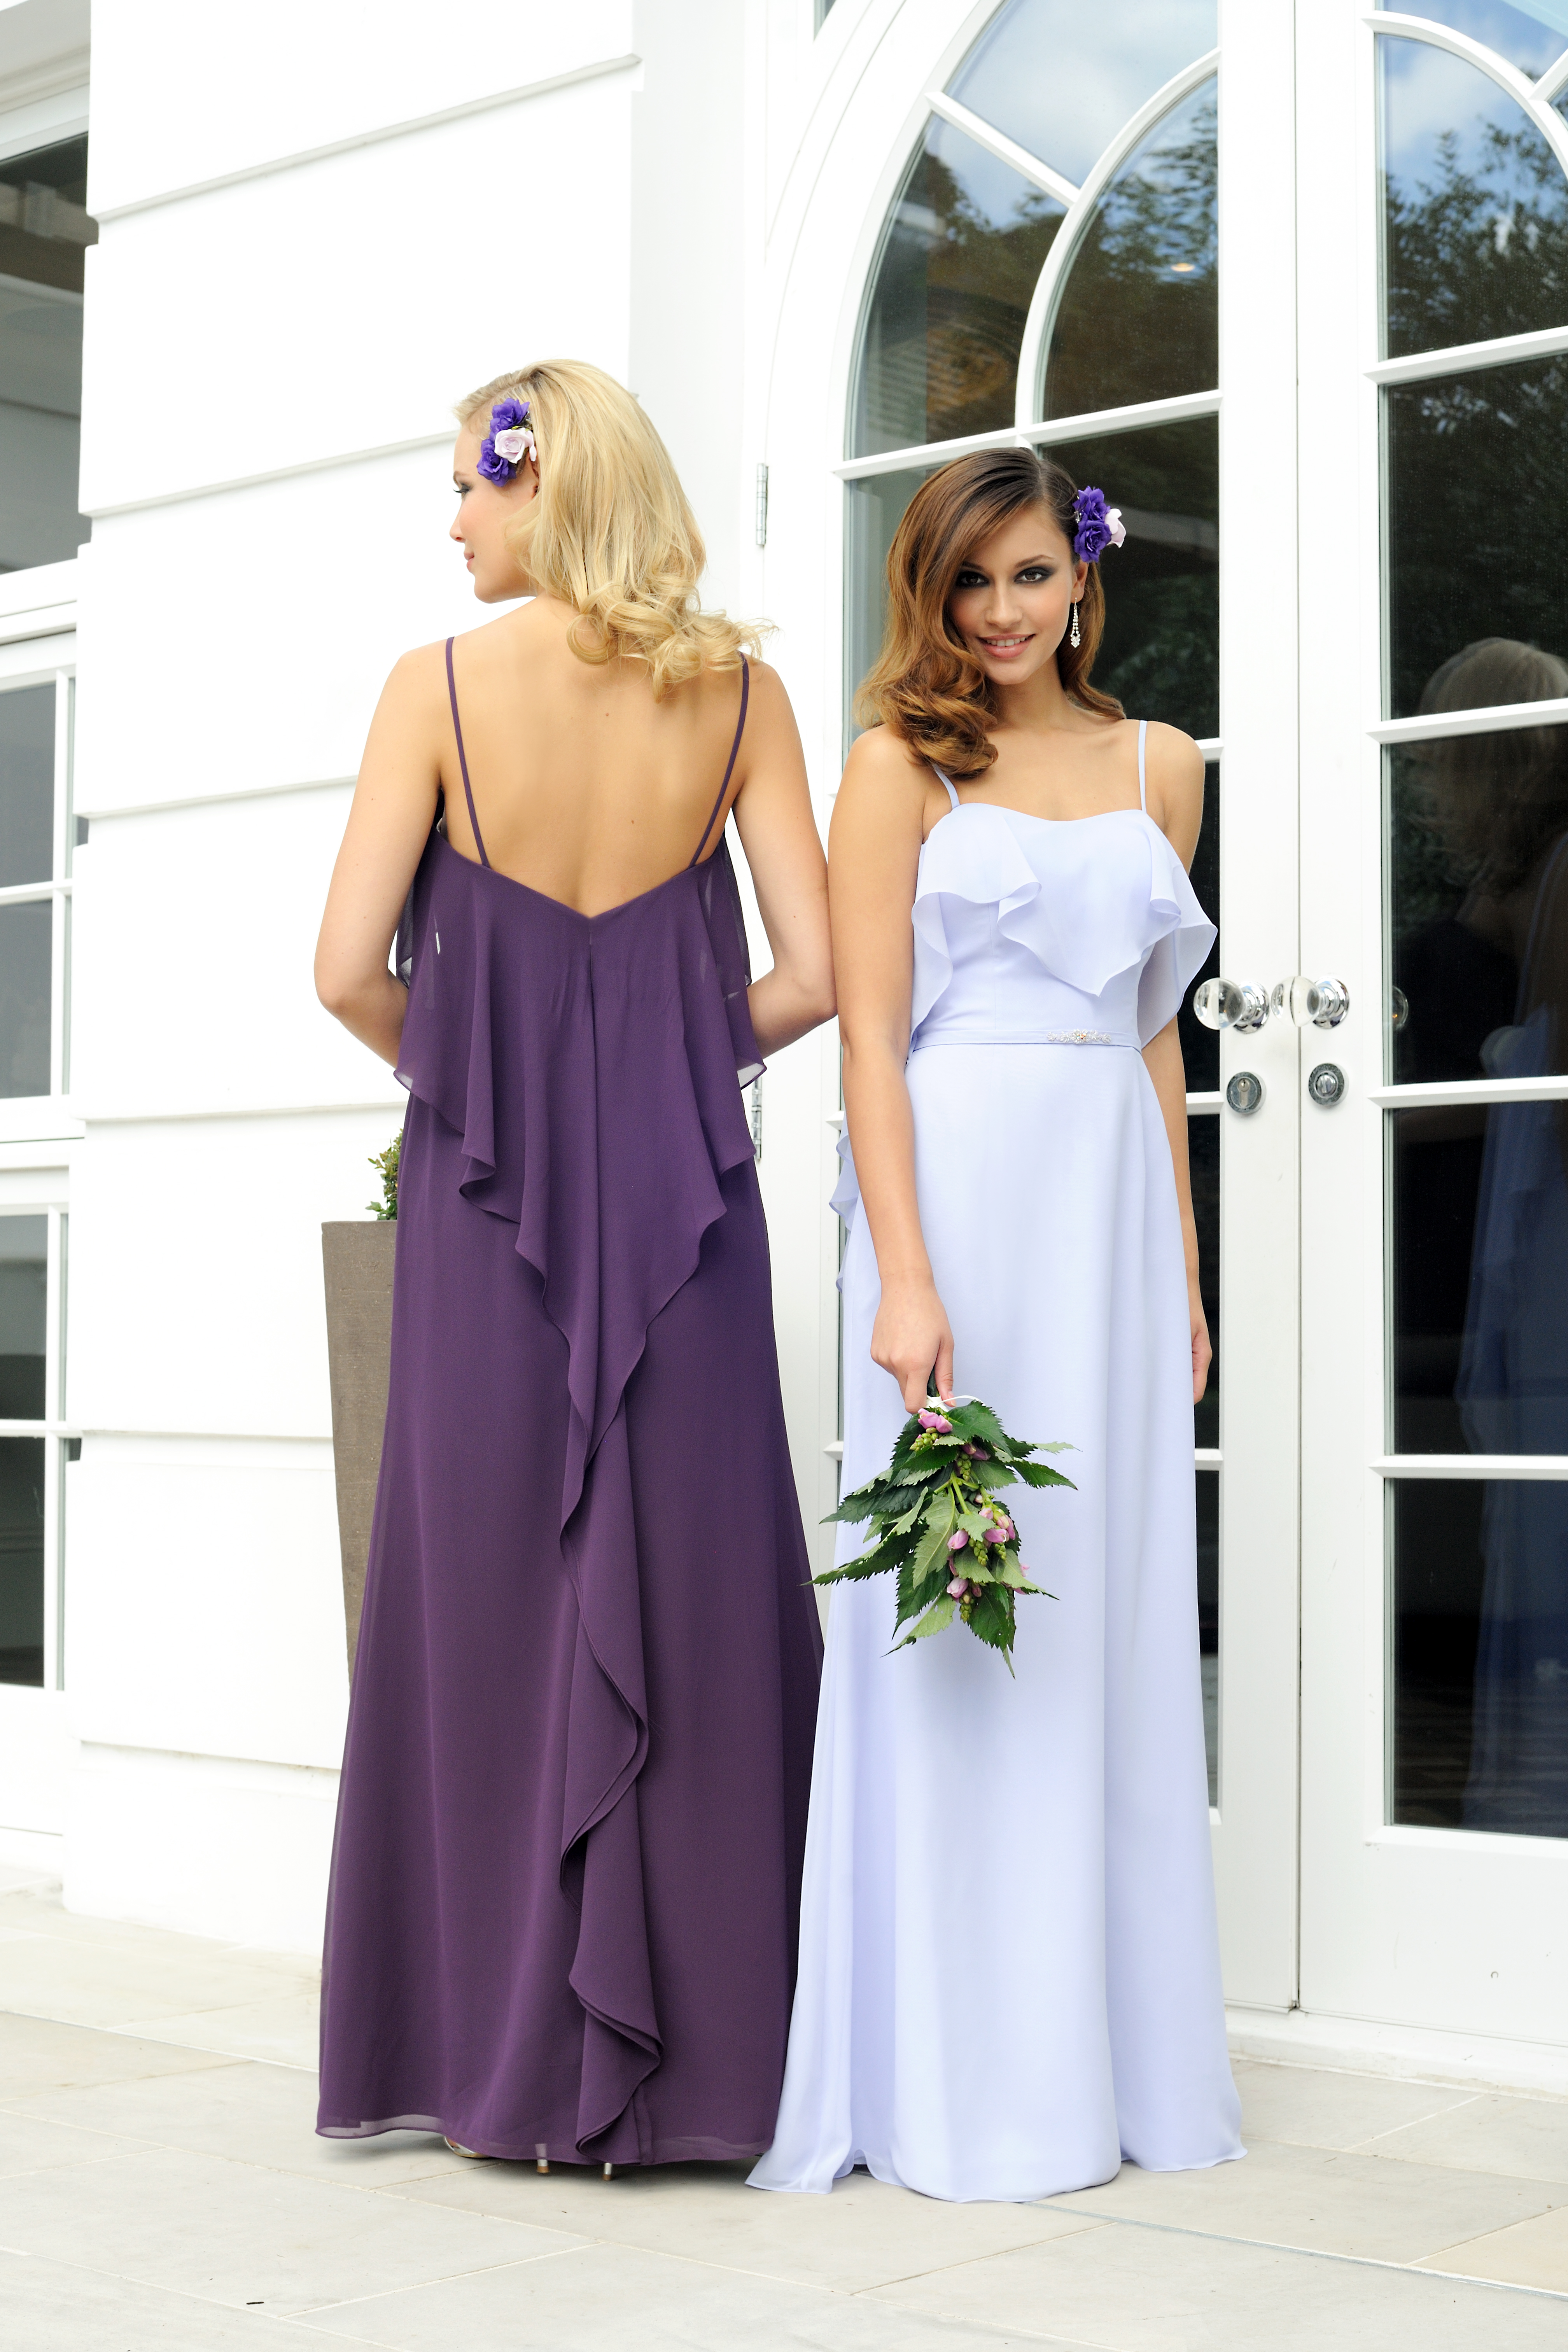 Green Bridesmaid Dresses Archives - Page 94 of 473 - Amore Wedding ...